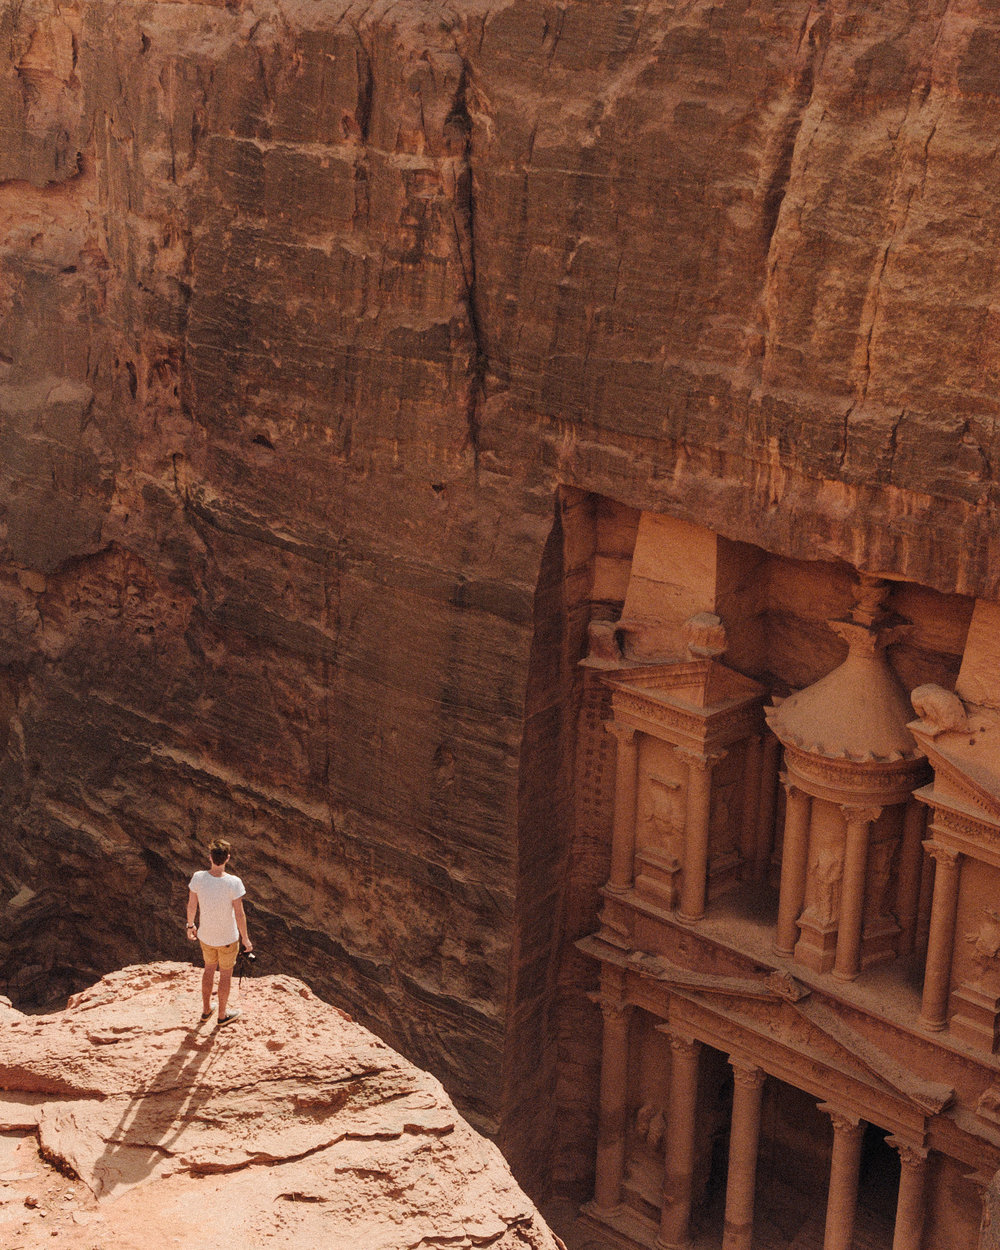 Hike-Best-View-Of-Treasury-Petra-Jordan